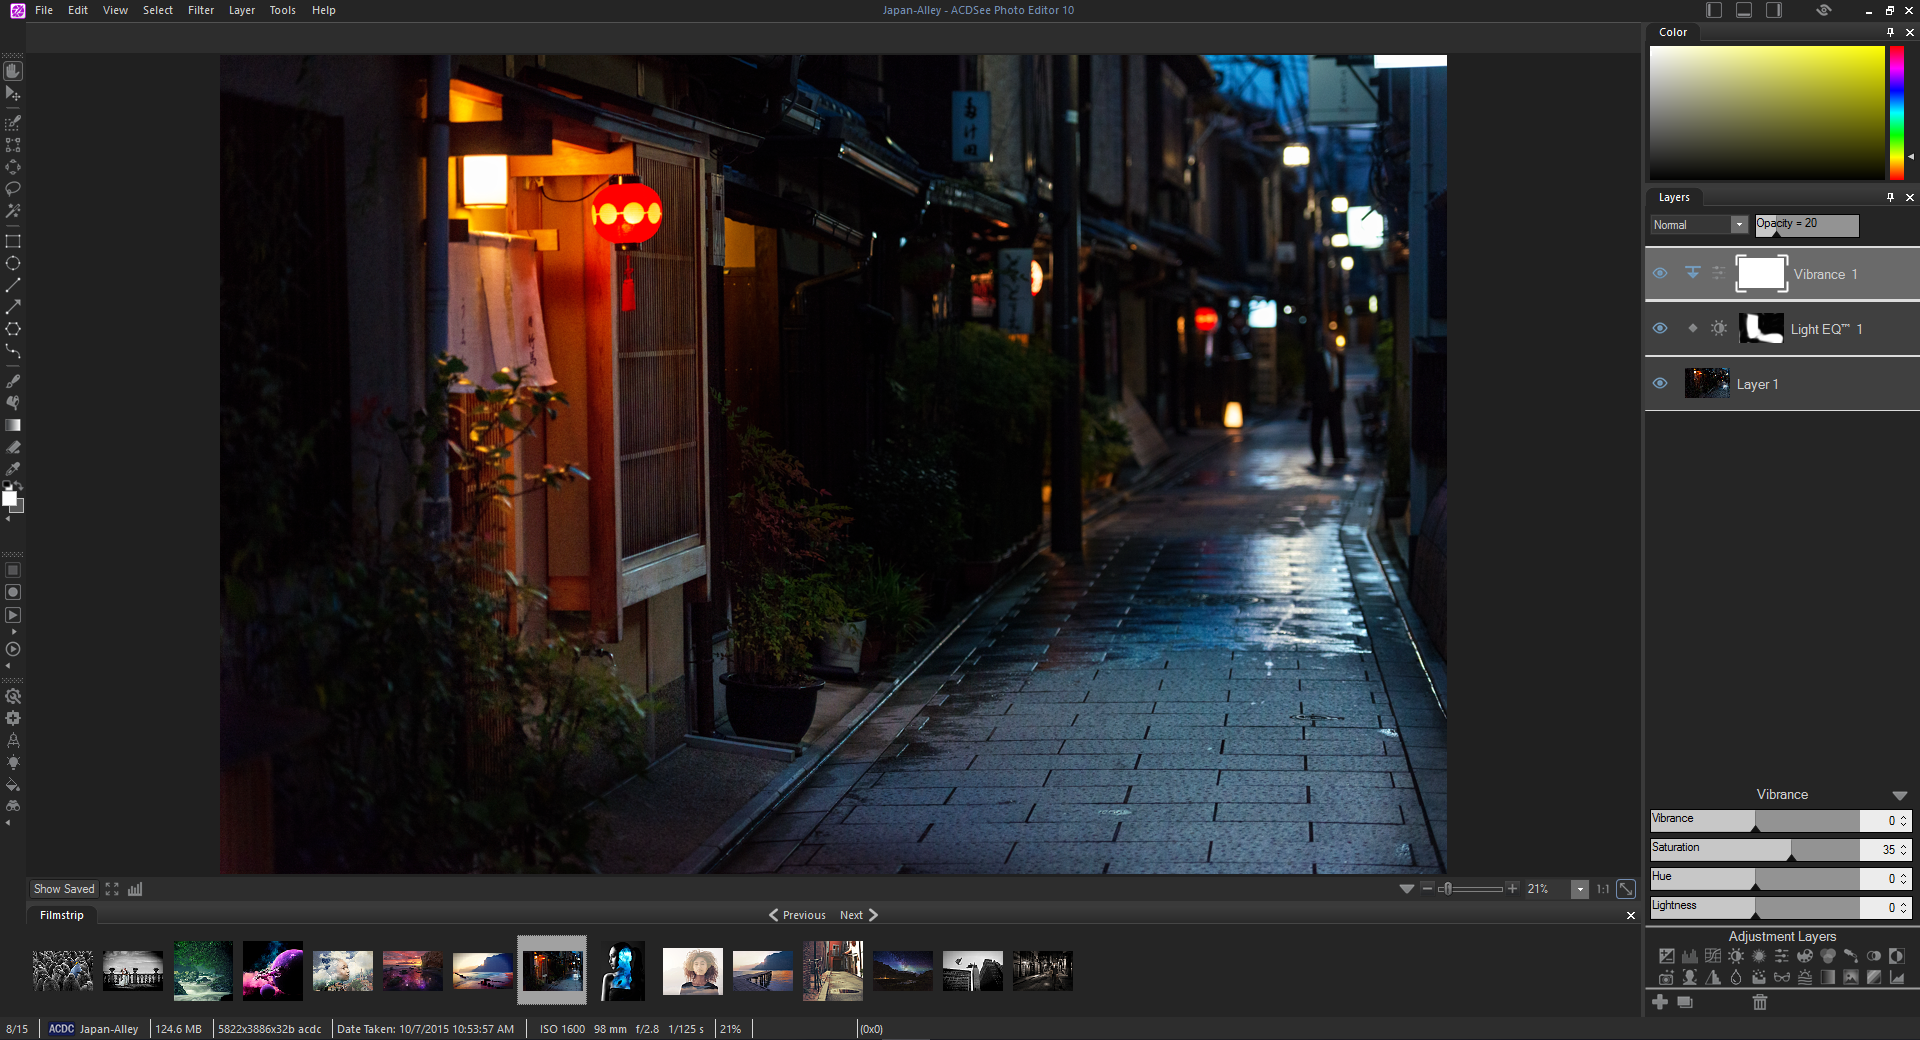 Built-In RAW Support & ACDSee Photo Editor 10